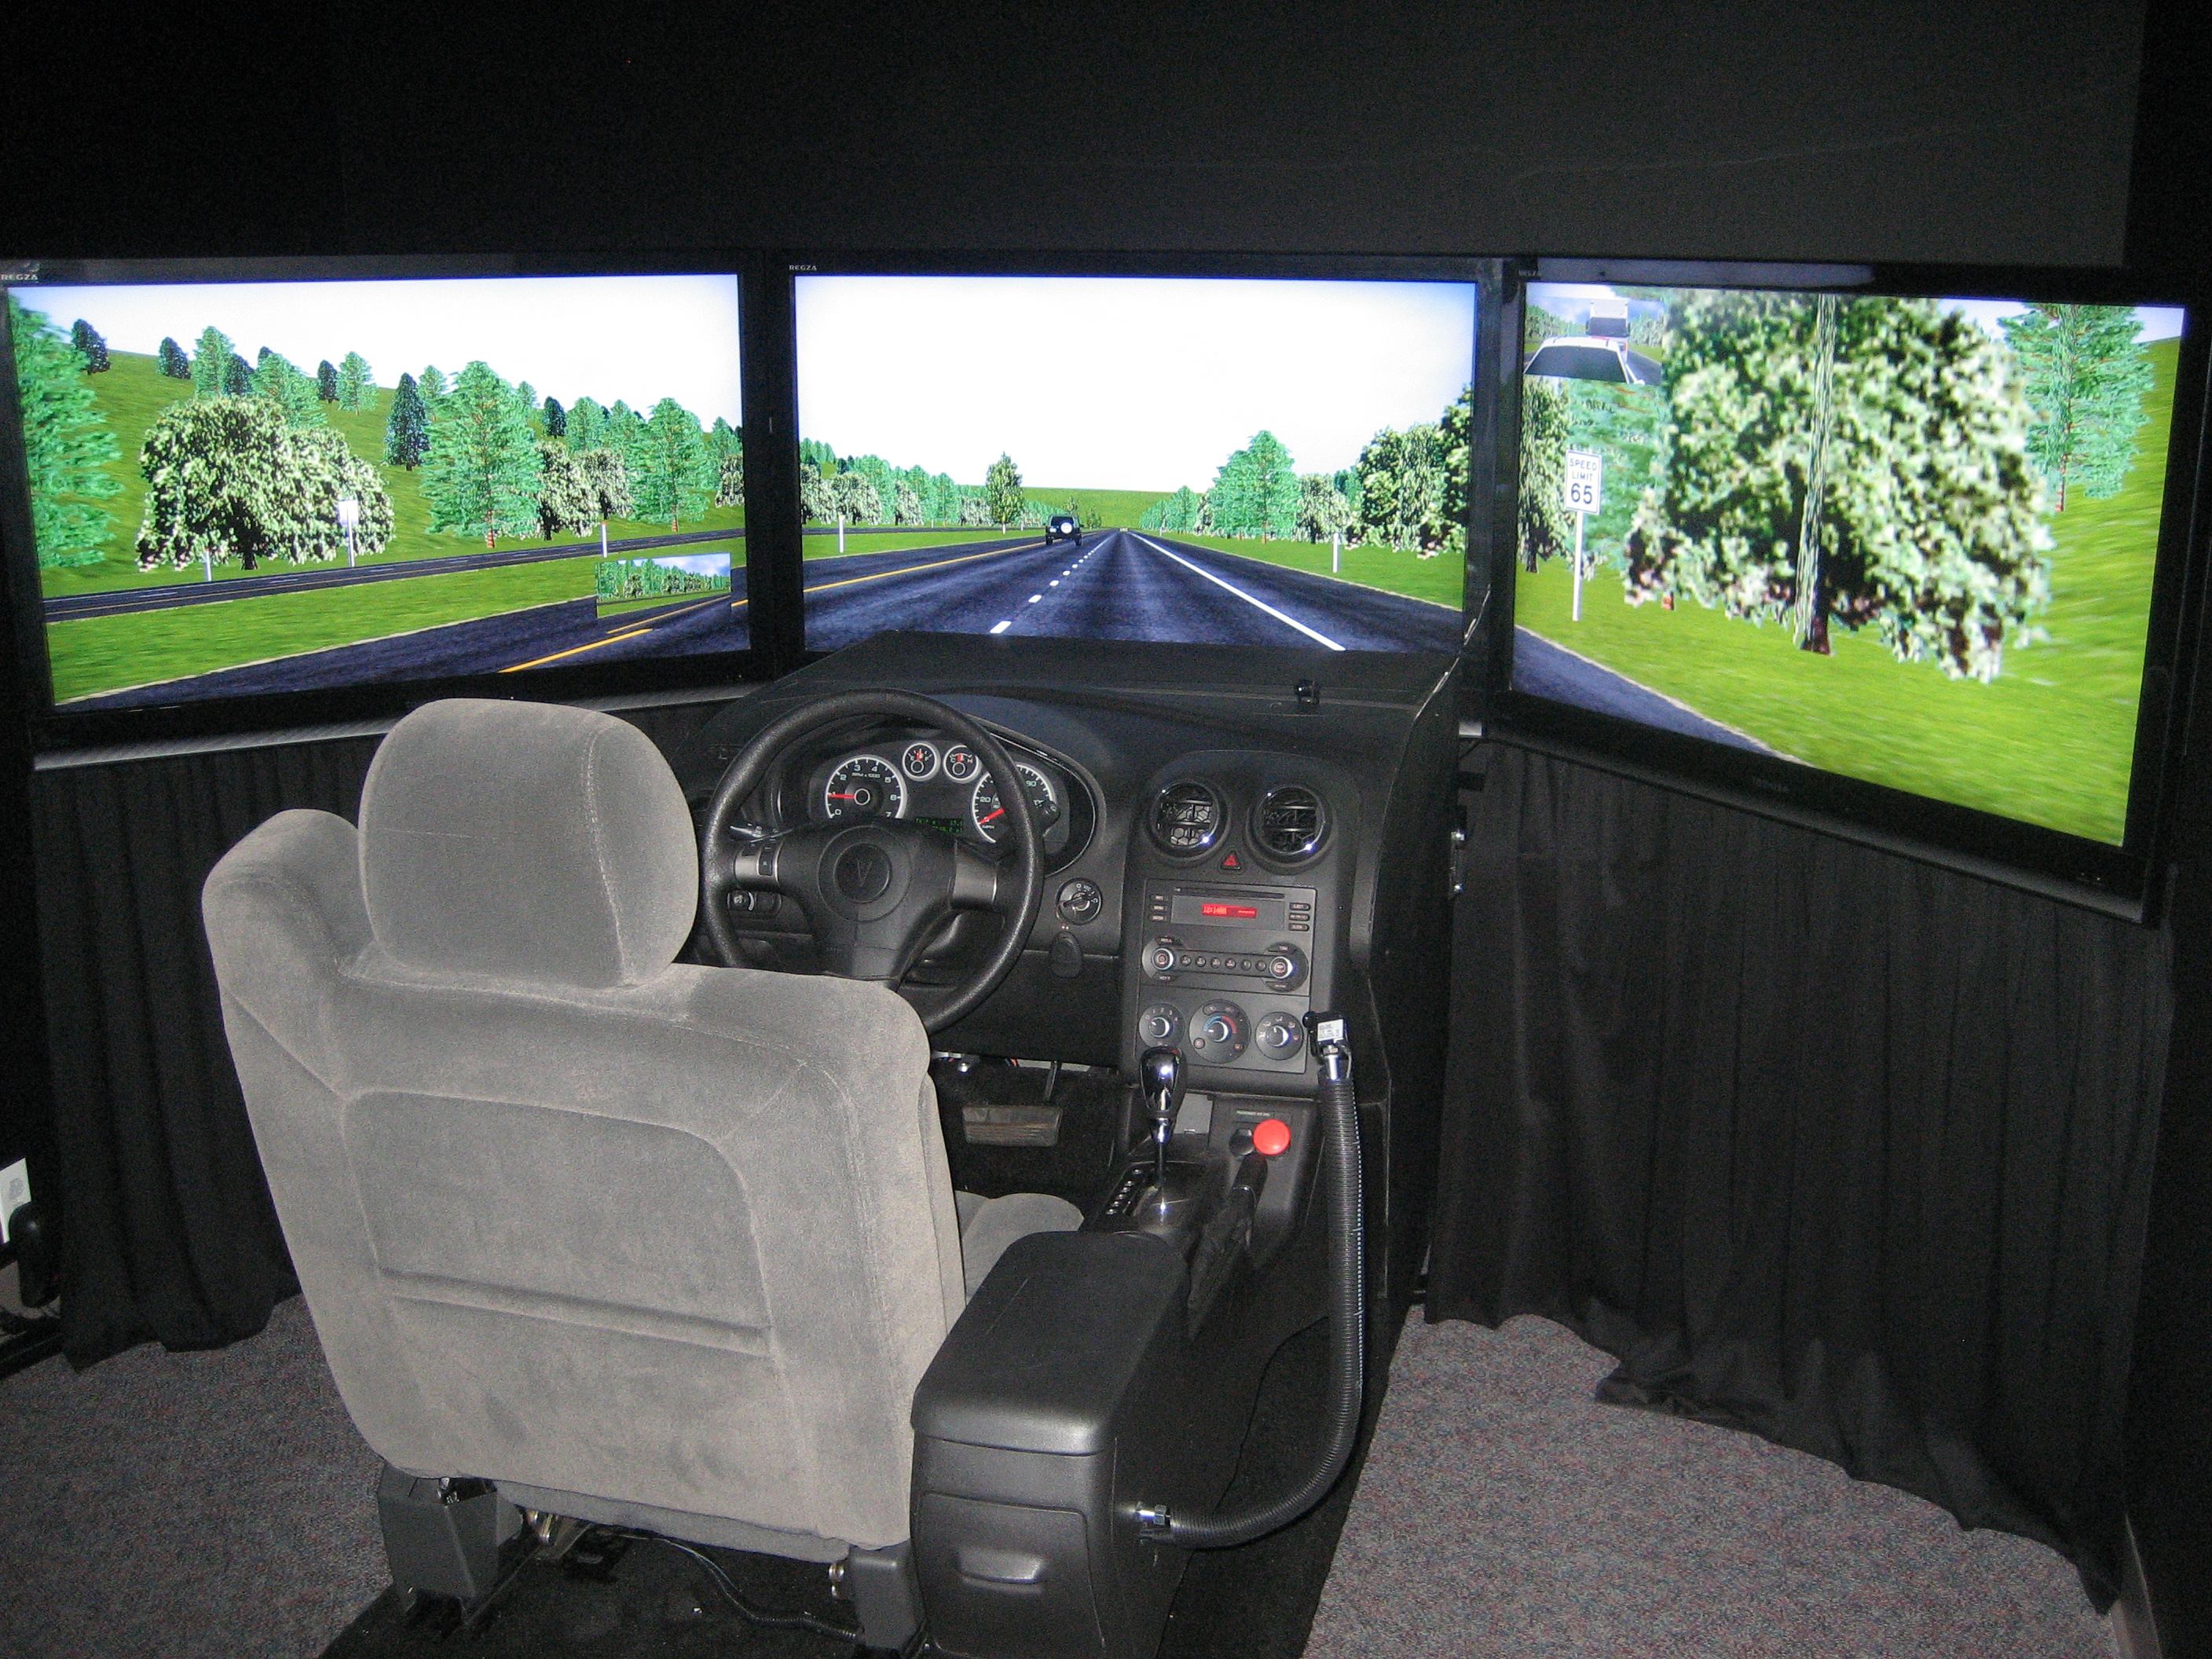 Everyone should learn to drive in a simulator | The Verge